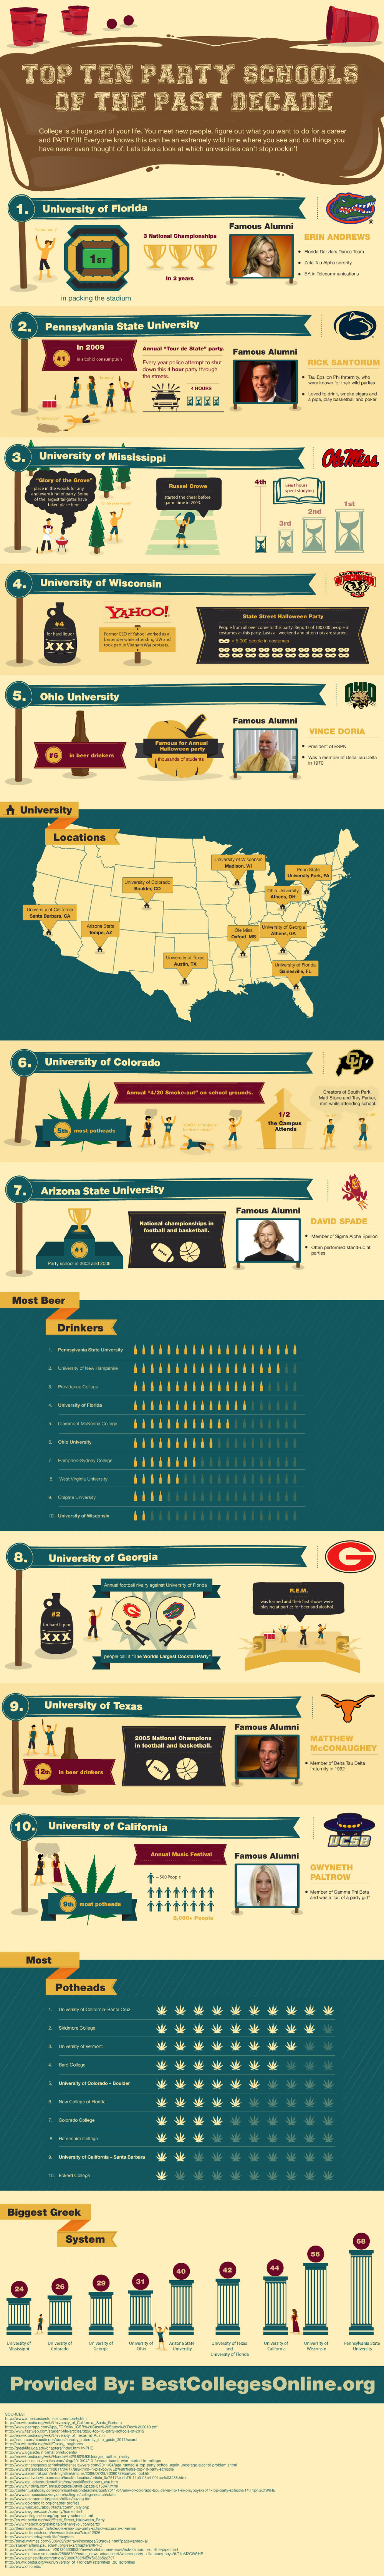 Top 10 Party Schools of the Past Decade Infographic